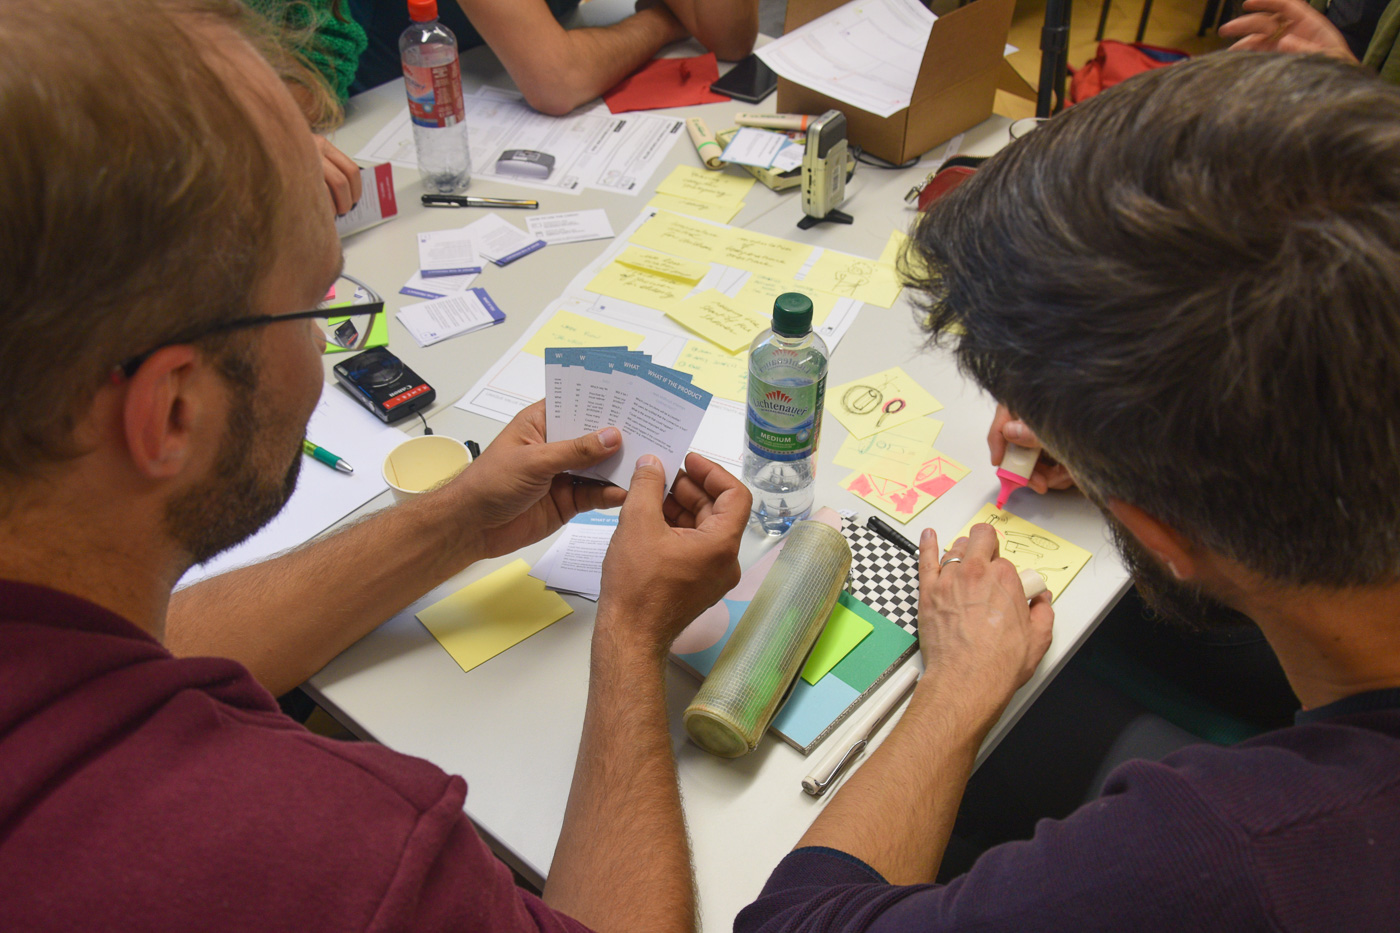 An international hands-on approach to Ideation